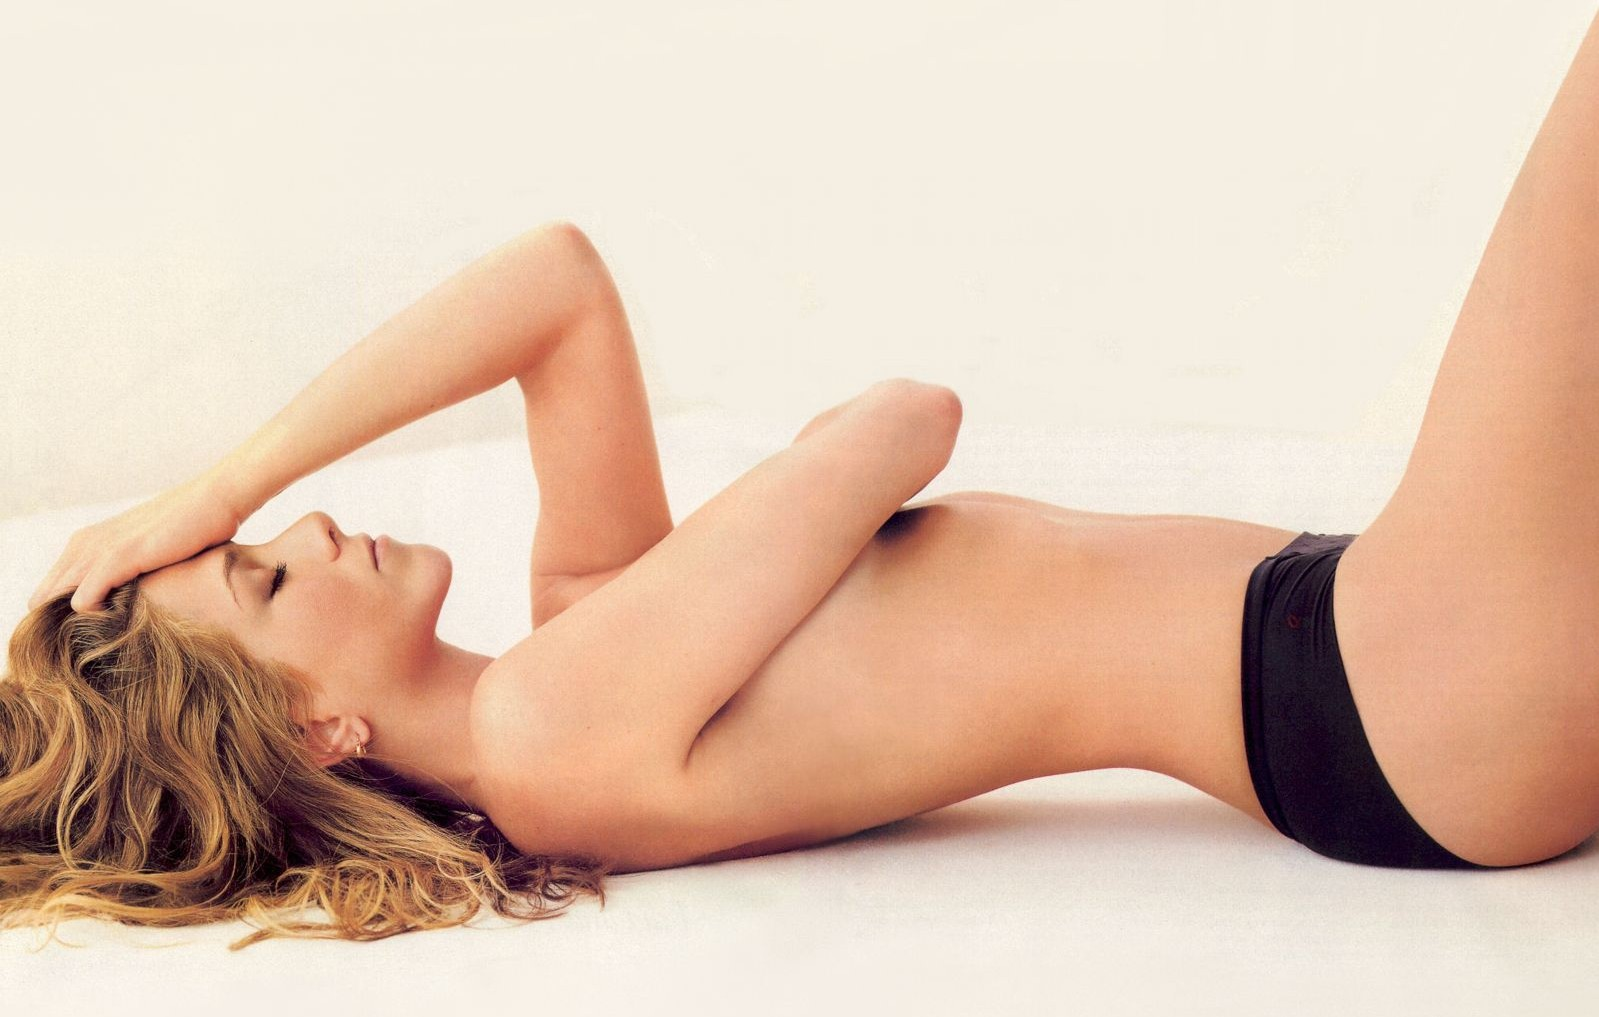 Gq Girls Jennifer Aniston